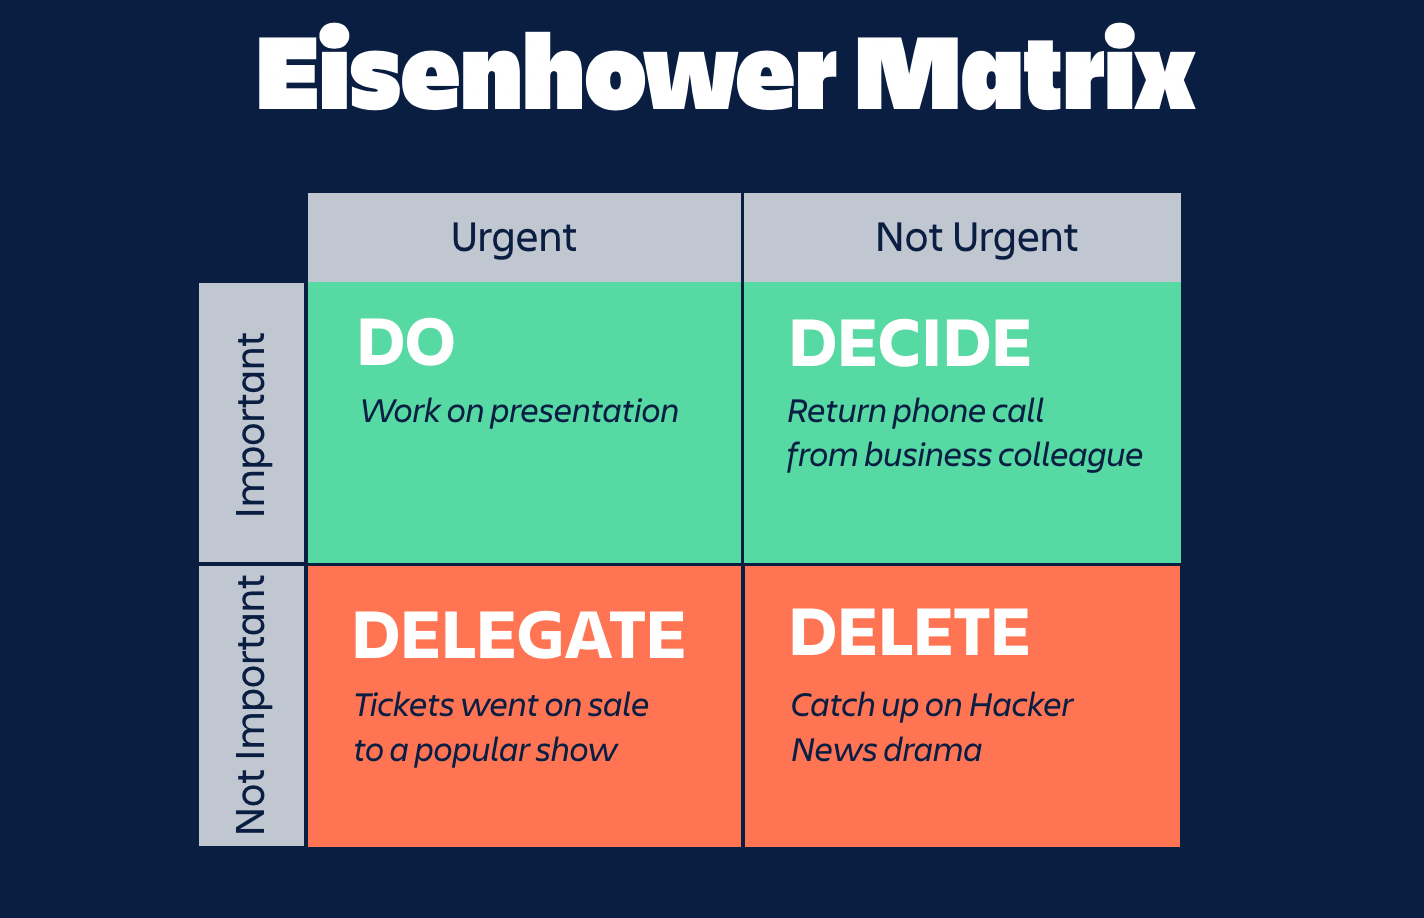 eisehower matrix 3